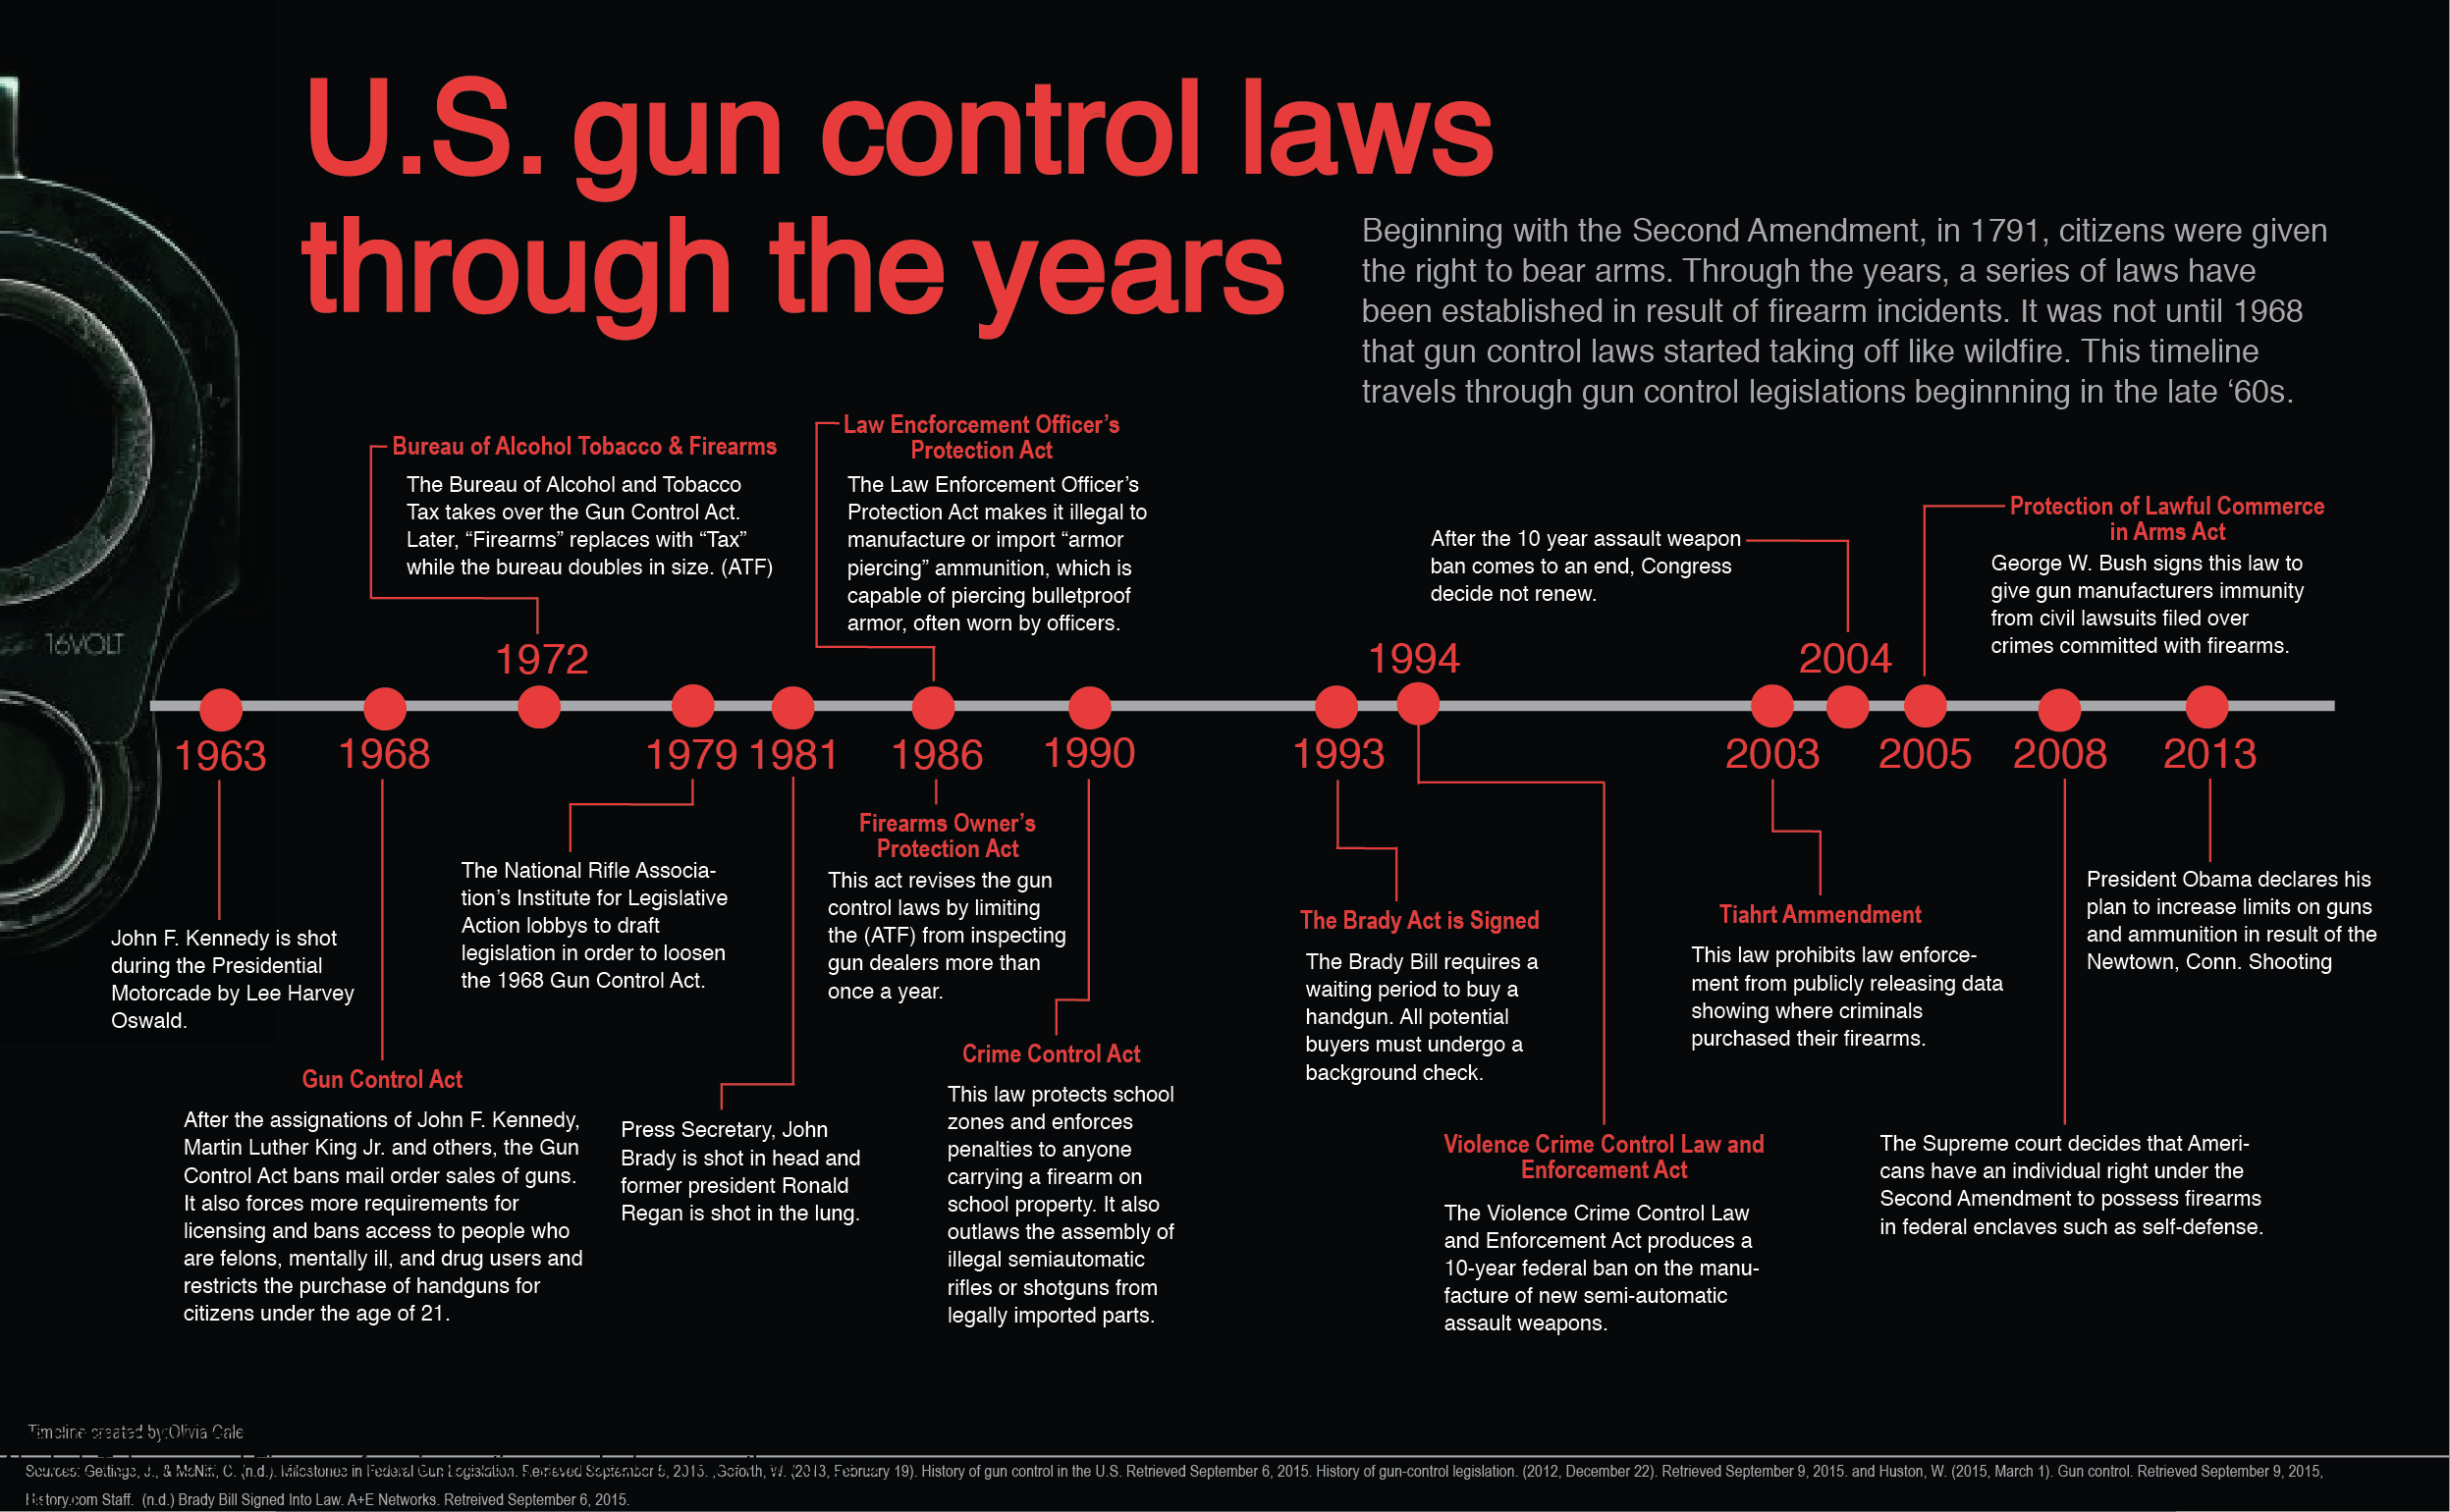 I created this timeline to capture the gun control laws through the years to fit the layout of a magazine spread. I used the contrast of a black background and red and white text to create a dramatic and intense feel, as this can be somewhat a dramatic topic.